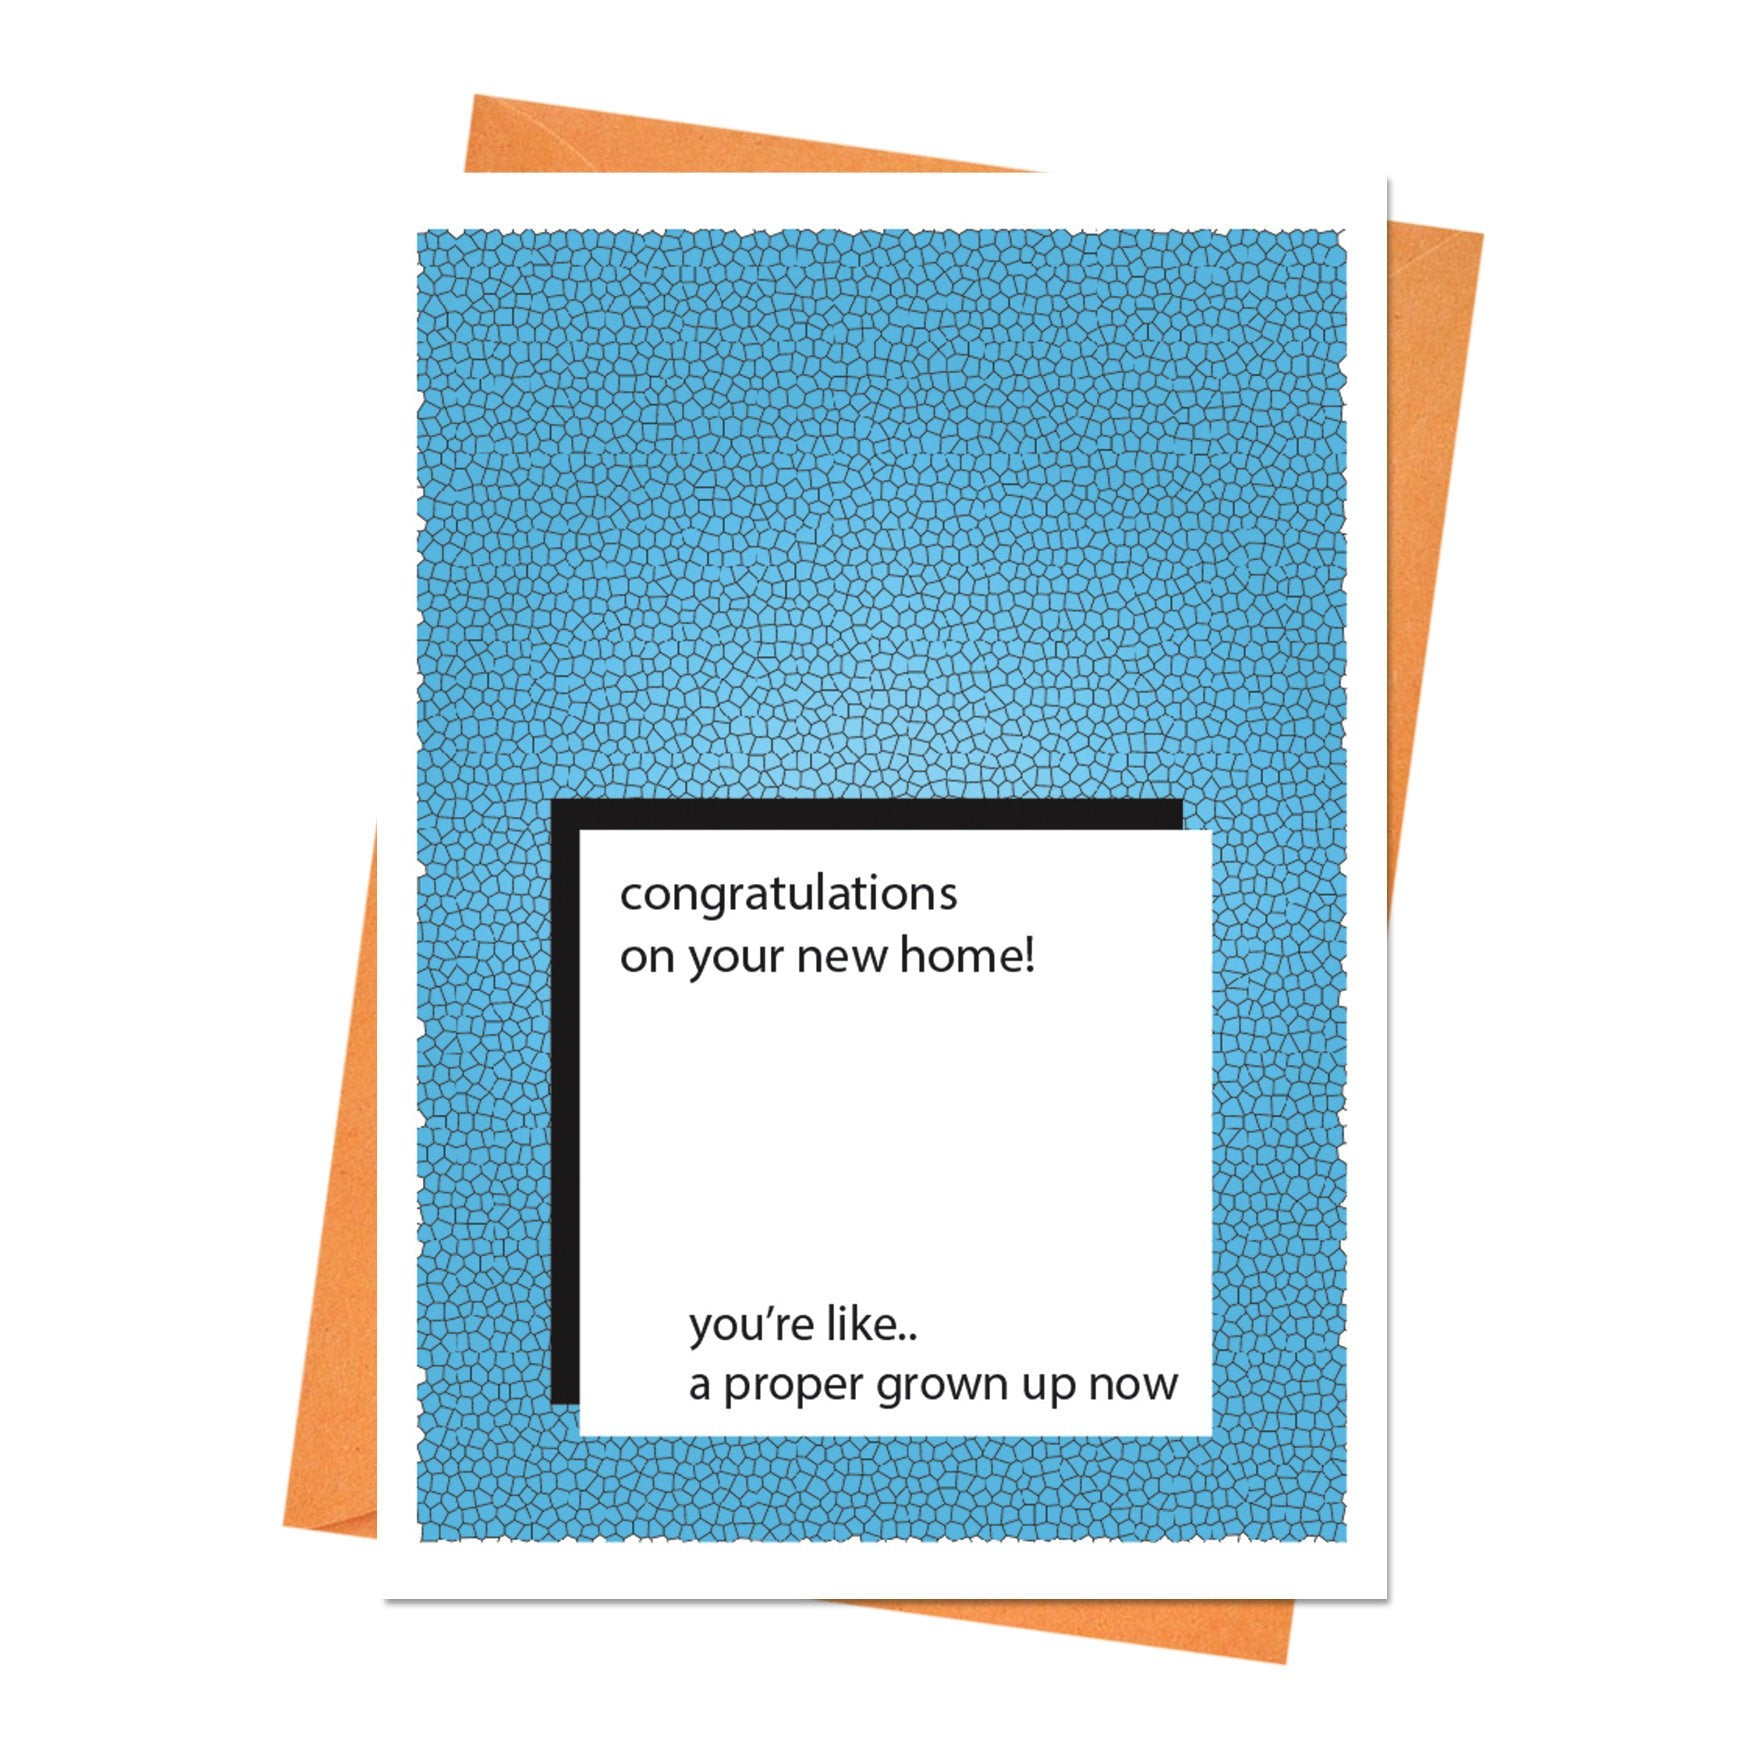 new home card housewarming card new house card house warming card congratulations on your new home greeting card